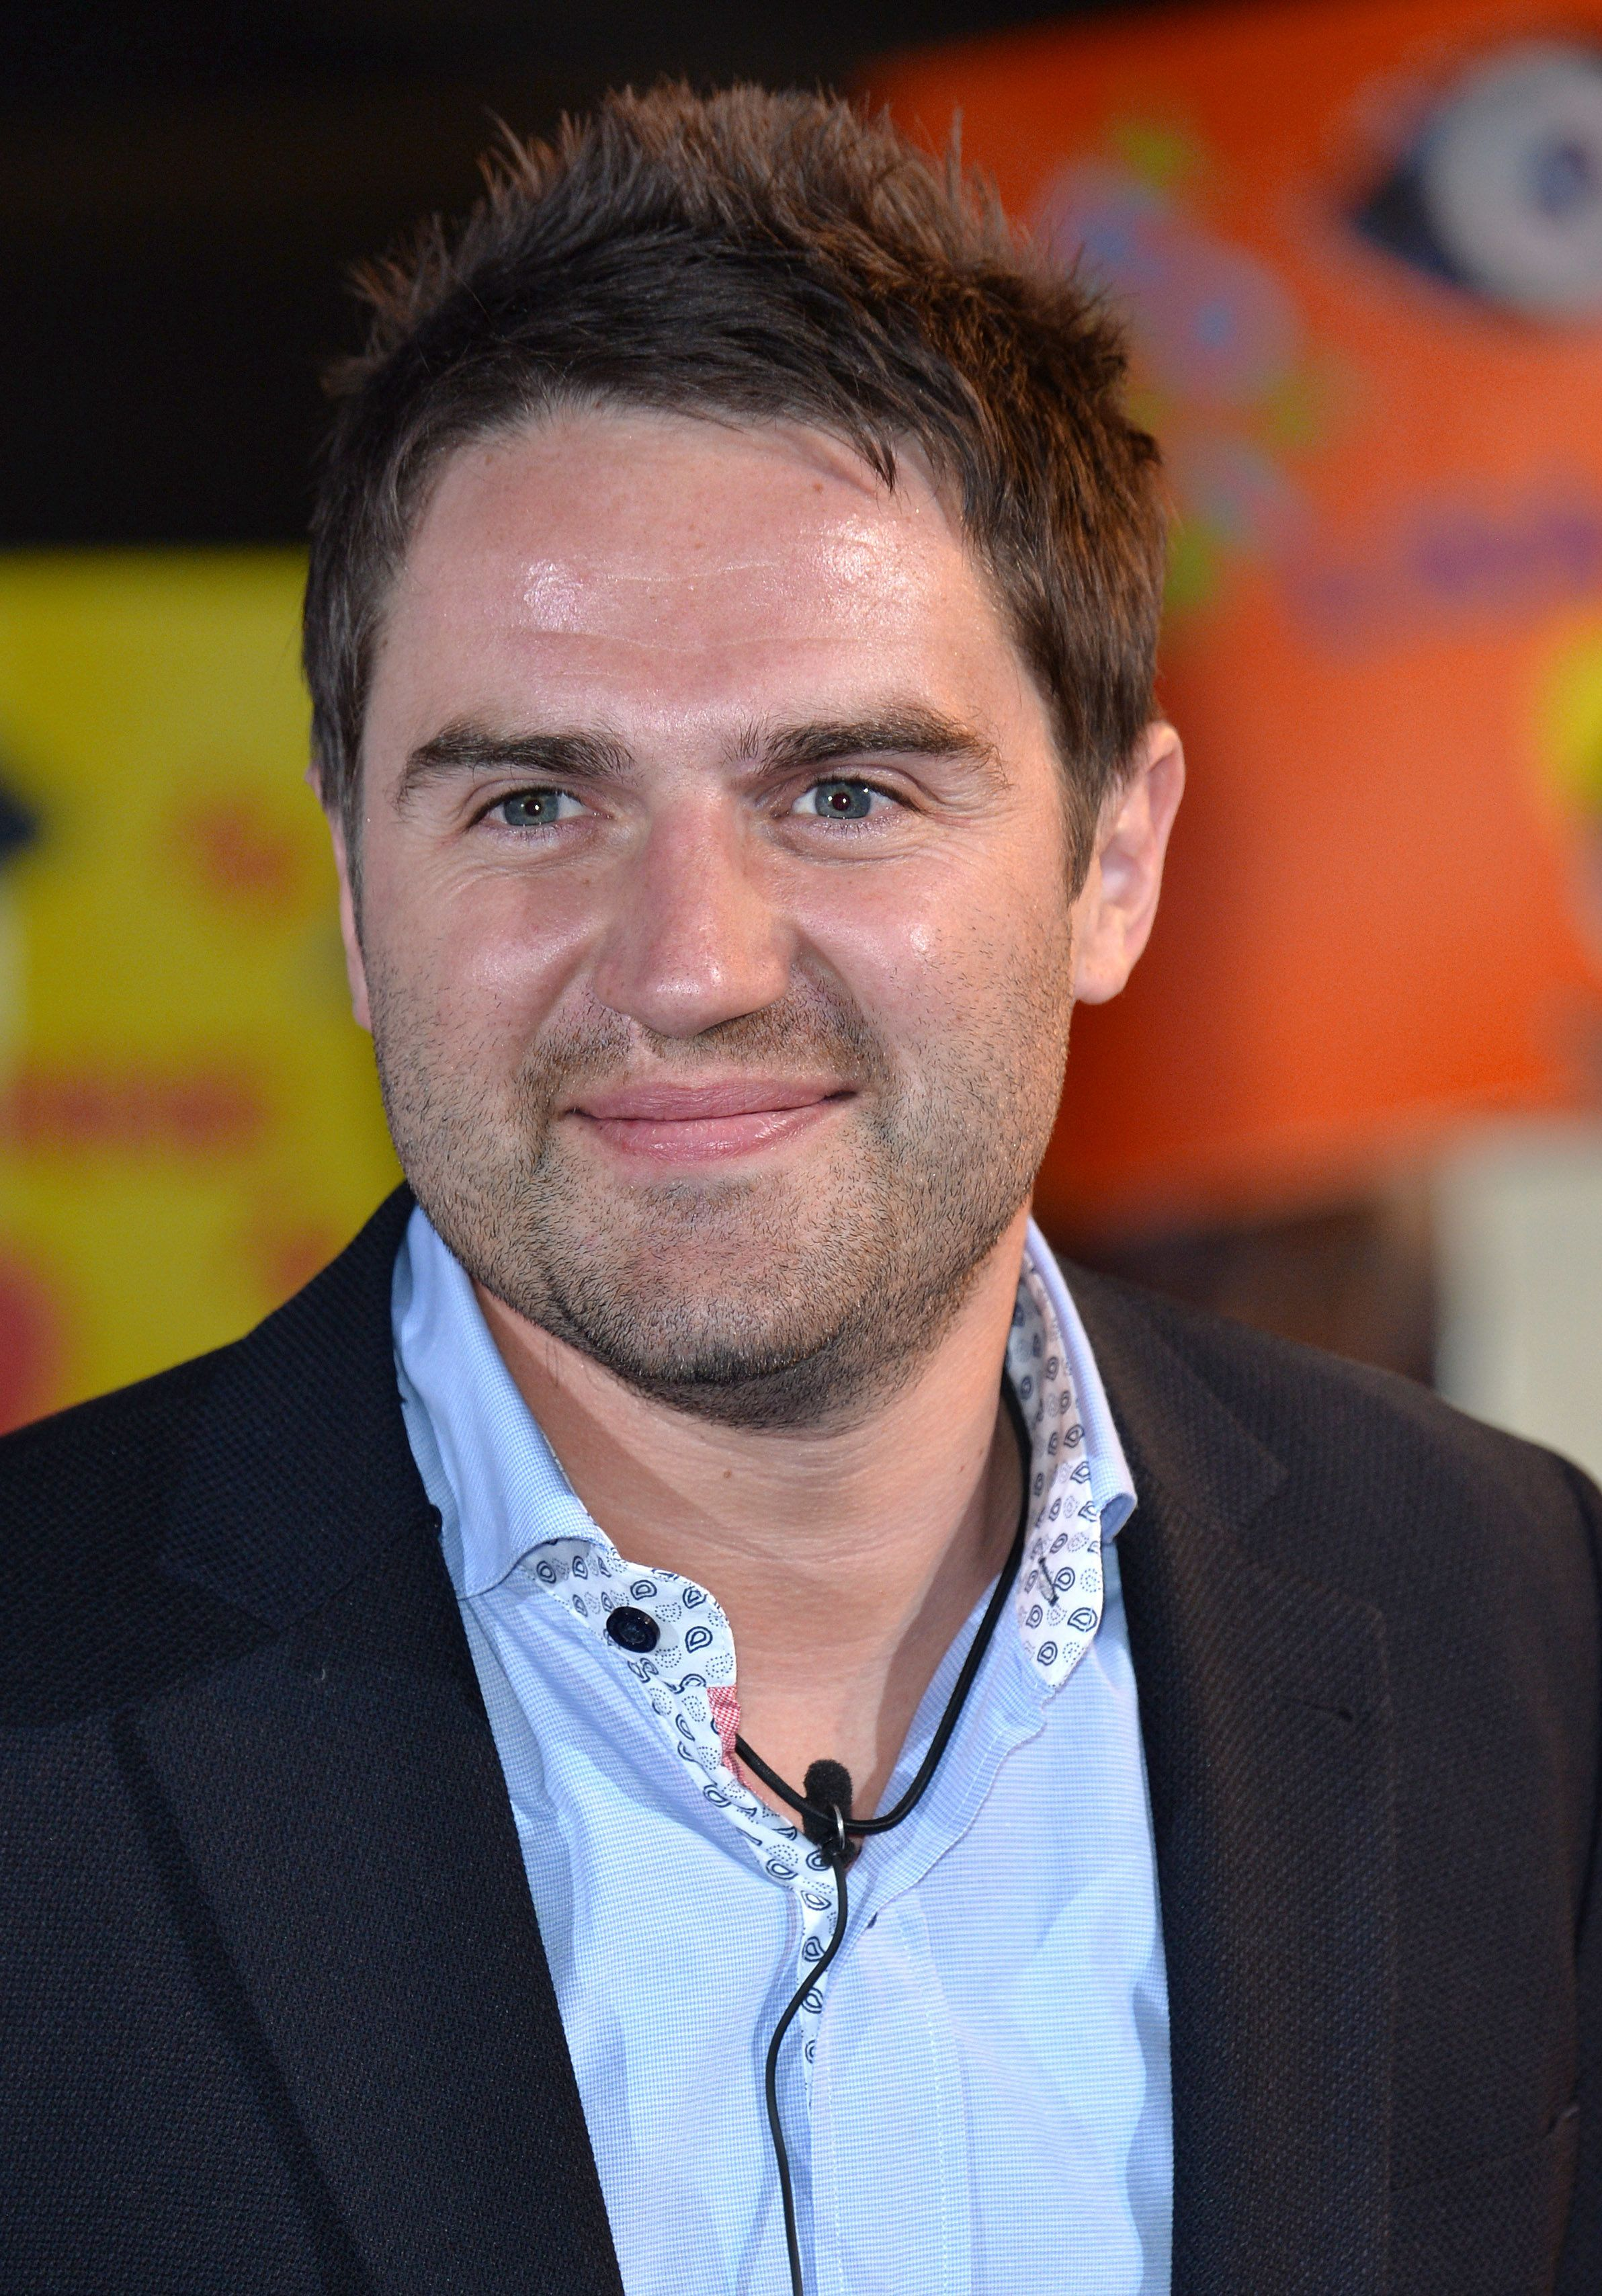 'Gogglebox' Star George Gilbey Arrested On Suspicion Of Assaulting